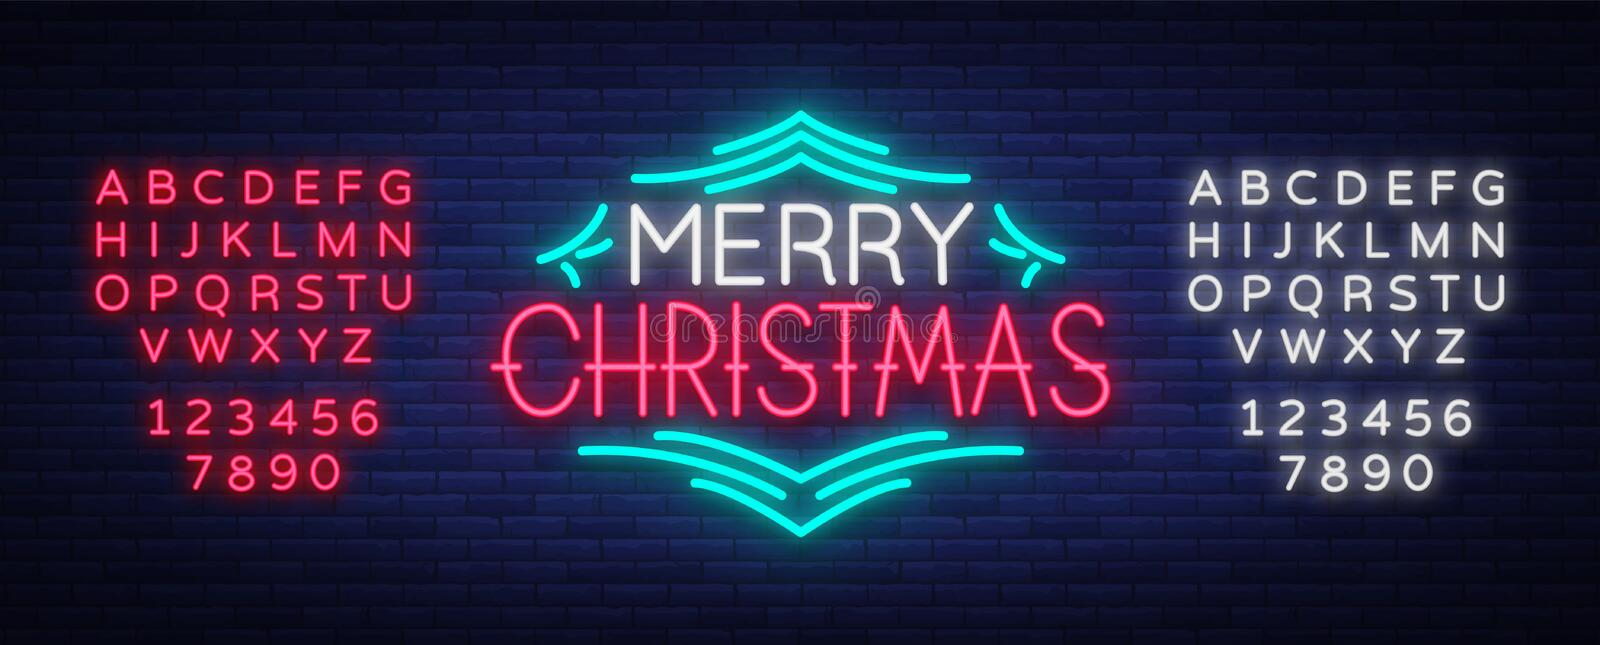 Merry Christmas text, template design letter template, cover in a neon style. Bright glowing banner, neon sign, night. Congratulation with Christmas. Vector vector illustration